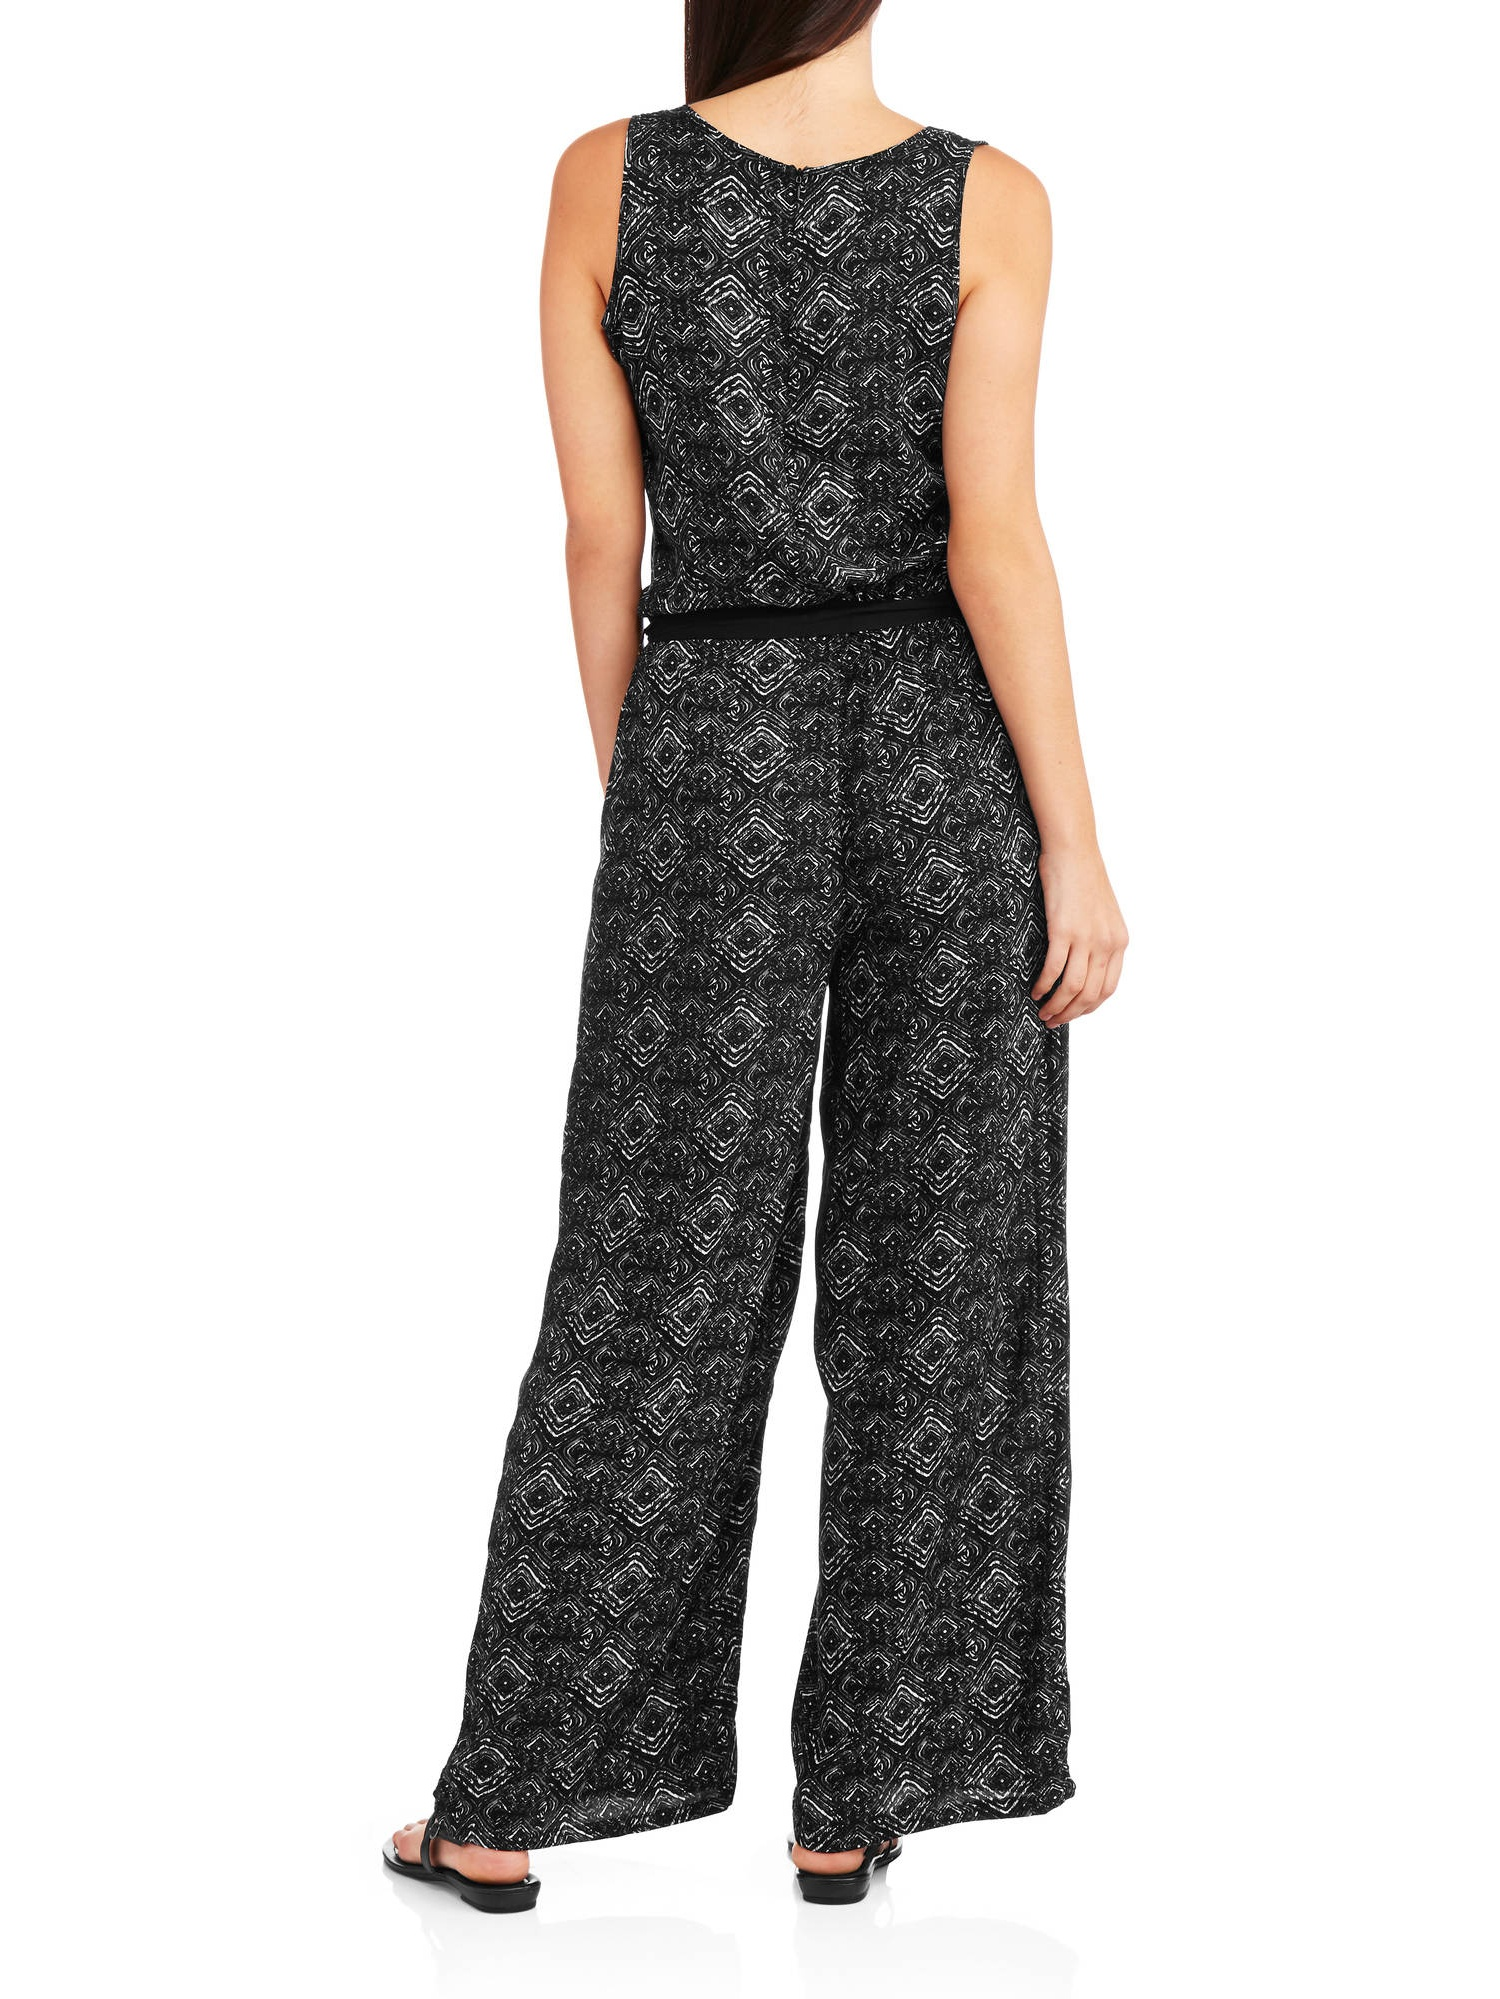 French Laundry - French Laundry Women s Woven Palazzo Jum - Walmart.com 0b2a5a75f7